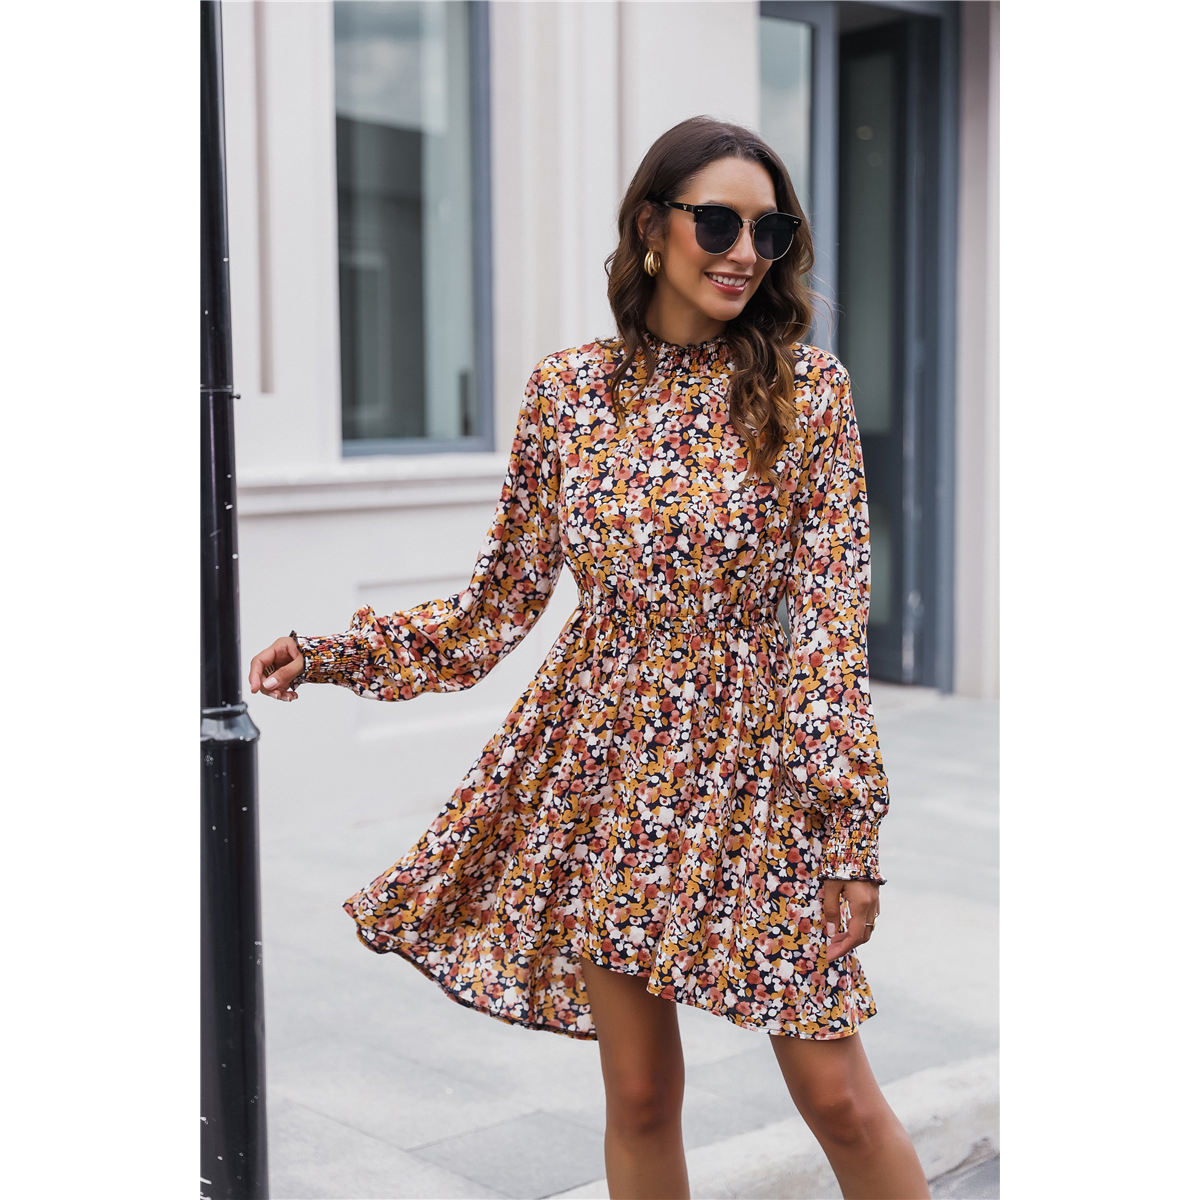 Women's 2020 New Long Puff Sleeve Casual Dresses Womens Fall Floral Fashion Dress Clothing Wholesale